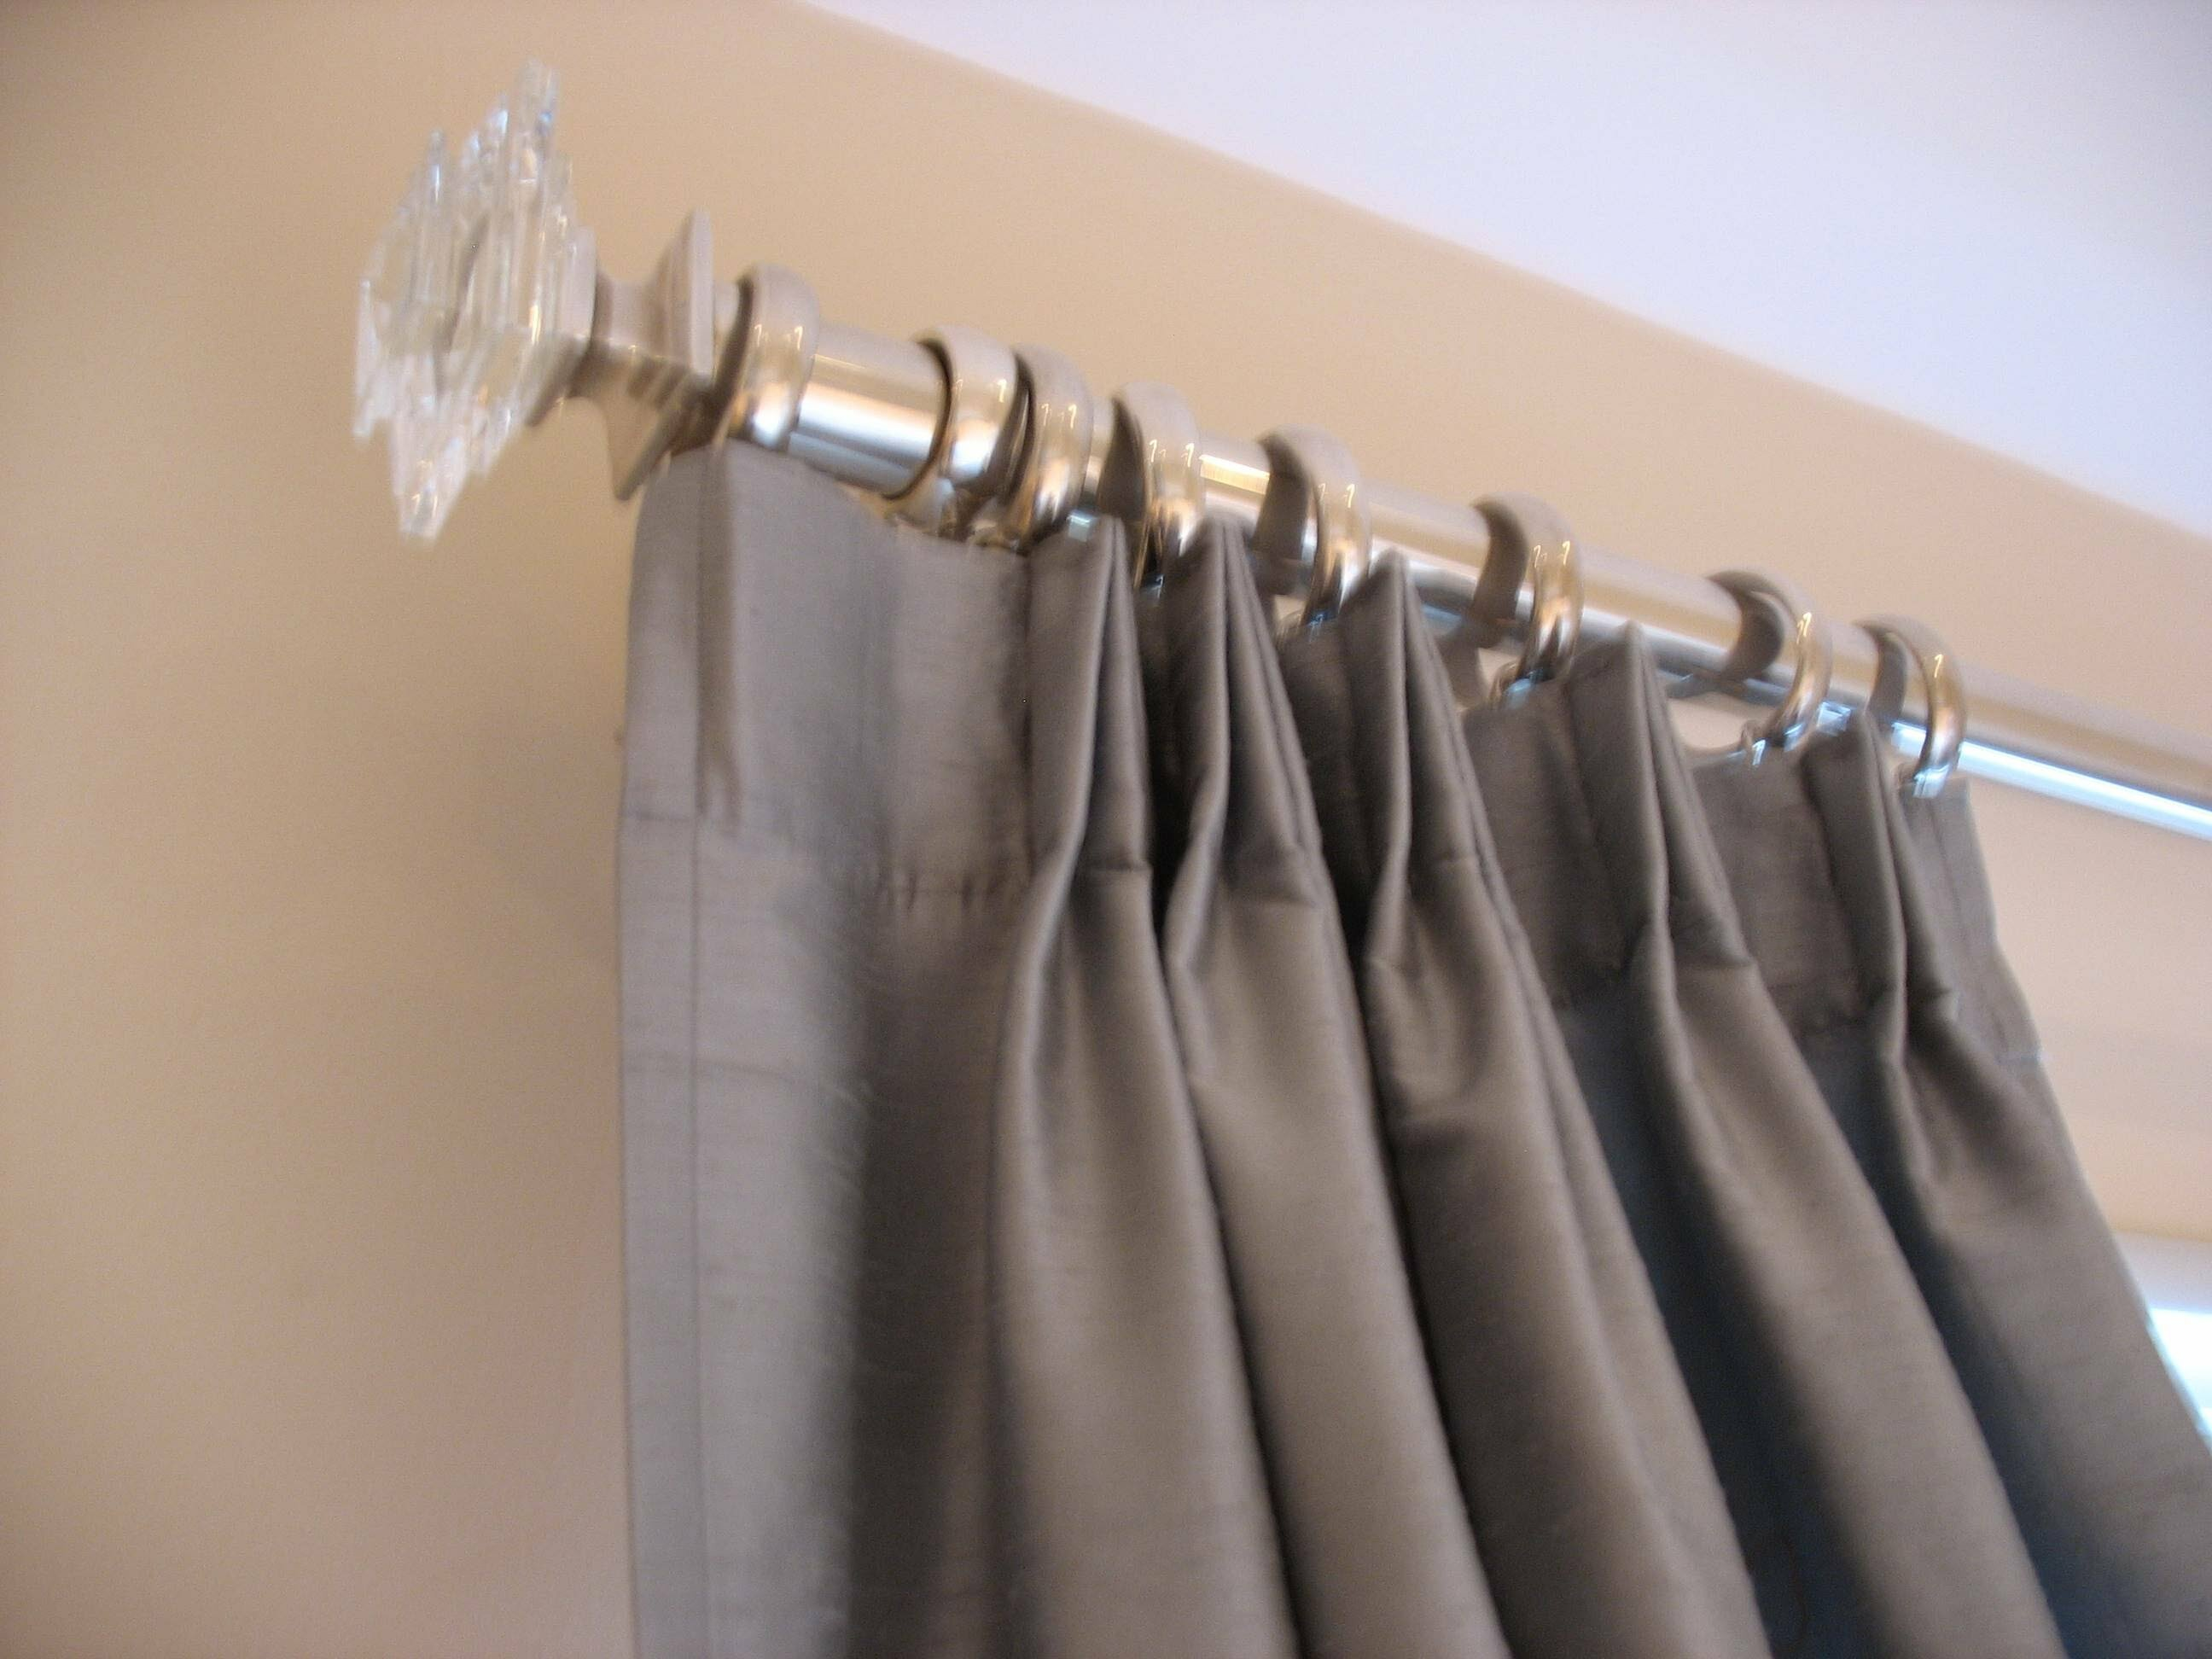 Restoration Hardware Shower Curtain | Restoration Hardware Curtain Rods | Screw in Shower Curtain Rod